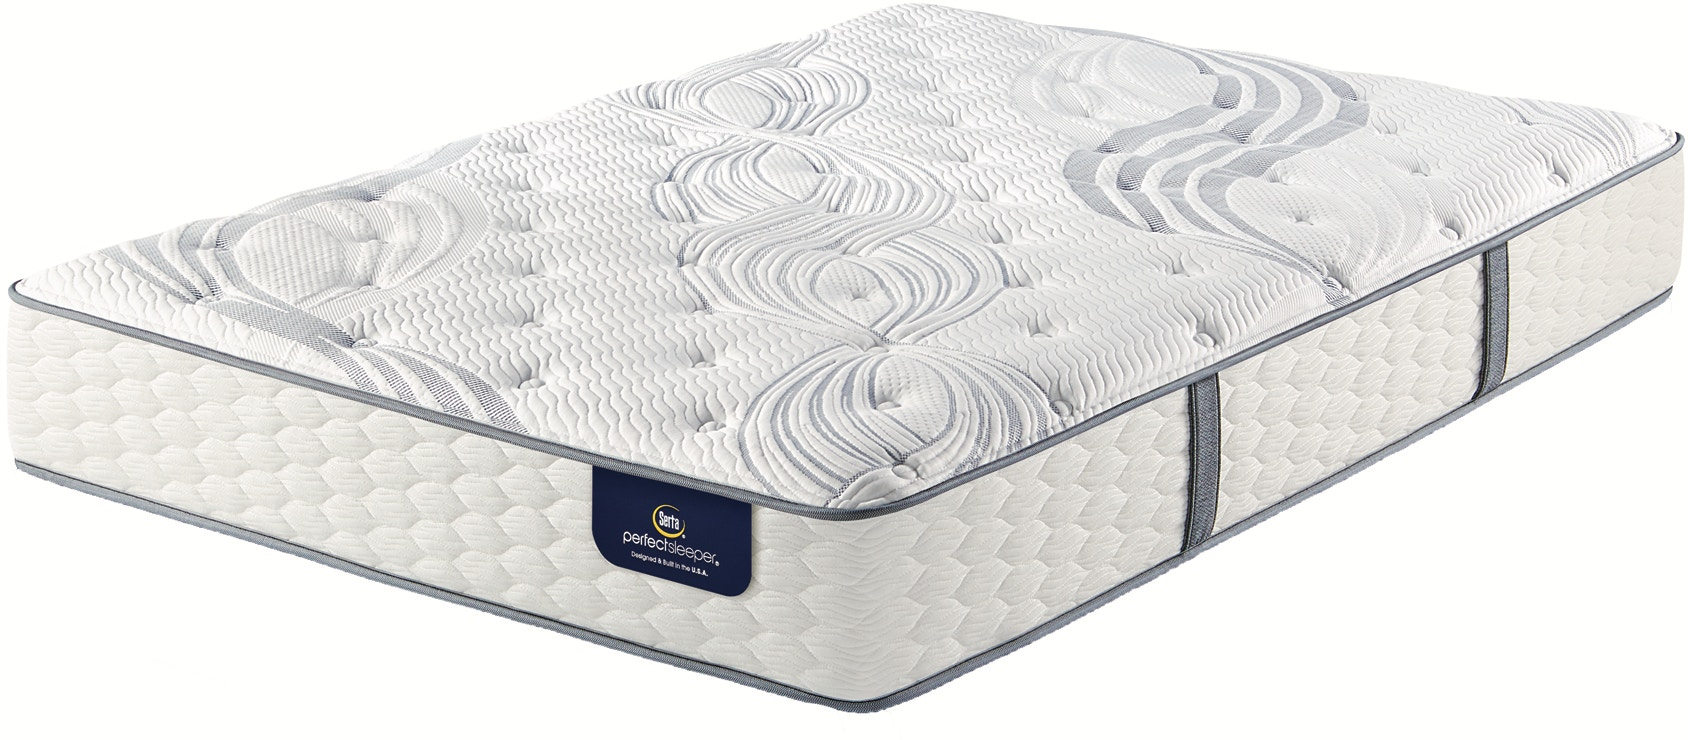 Linden Pond Plush Mattress - Twin